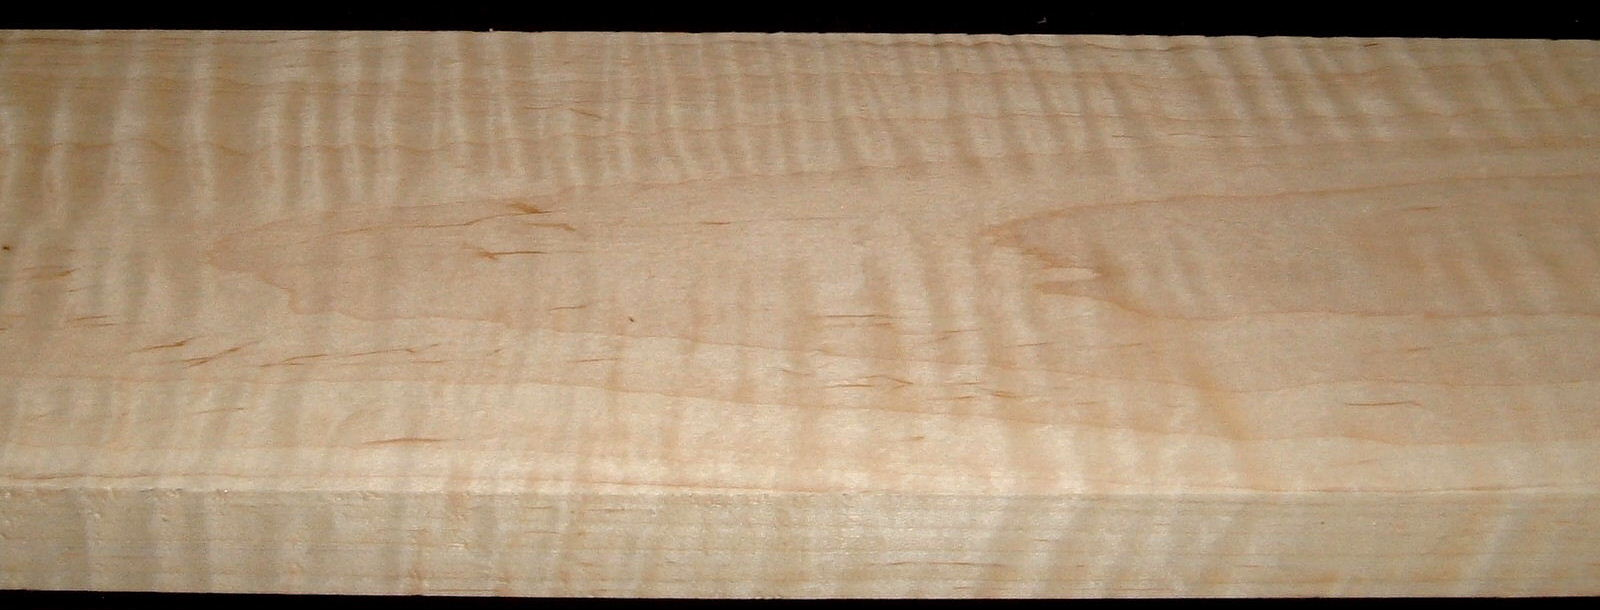 M2007-589L, 1-1/4x6-1/4x79, Curly Tiger Maple